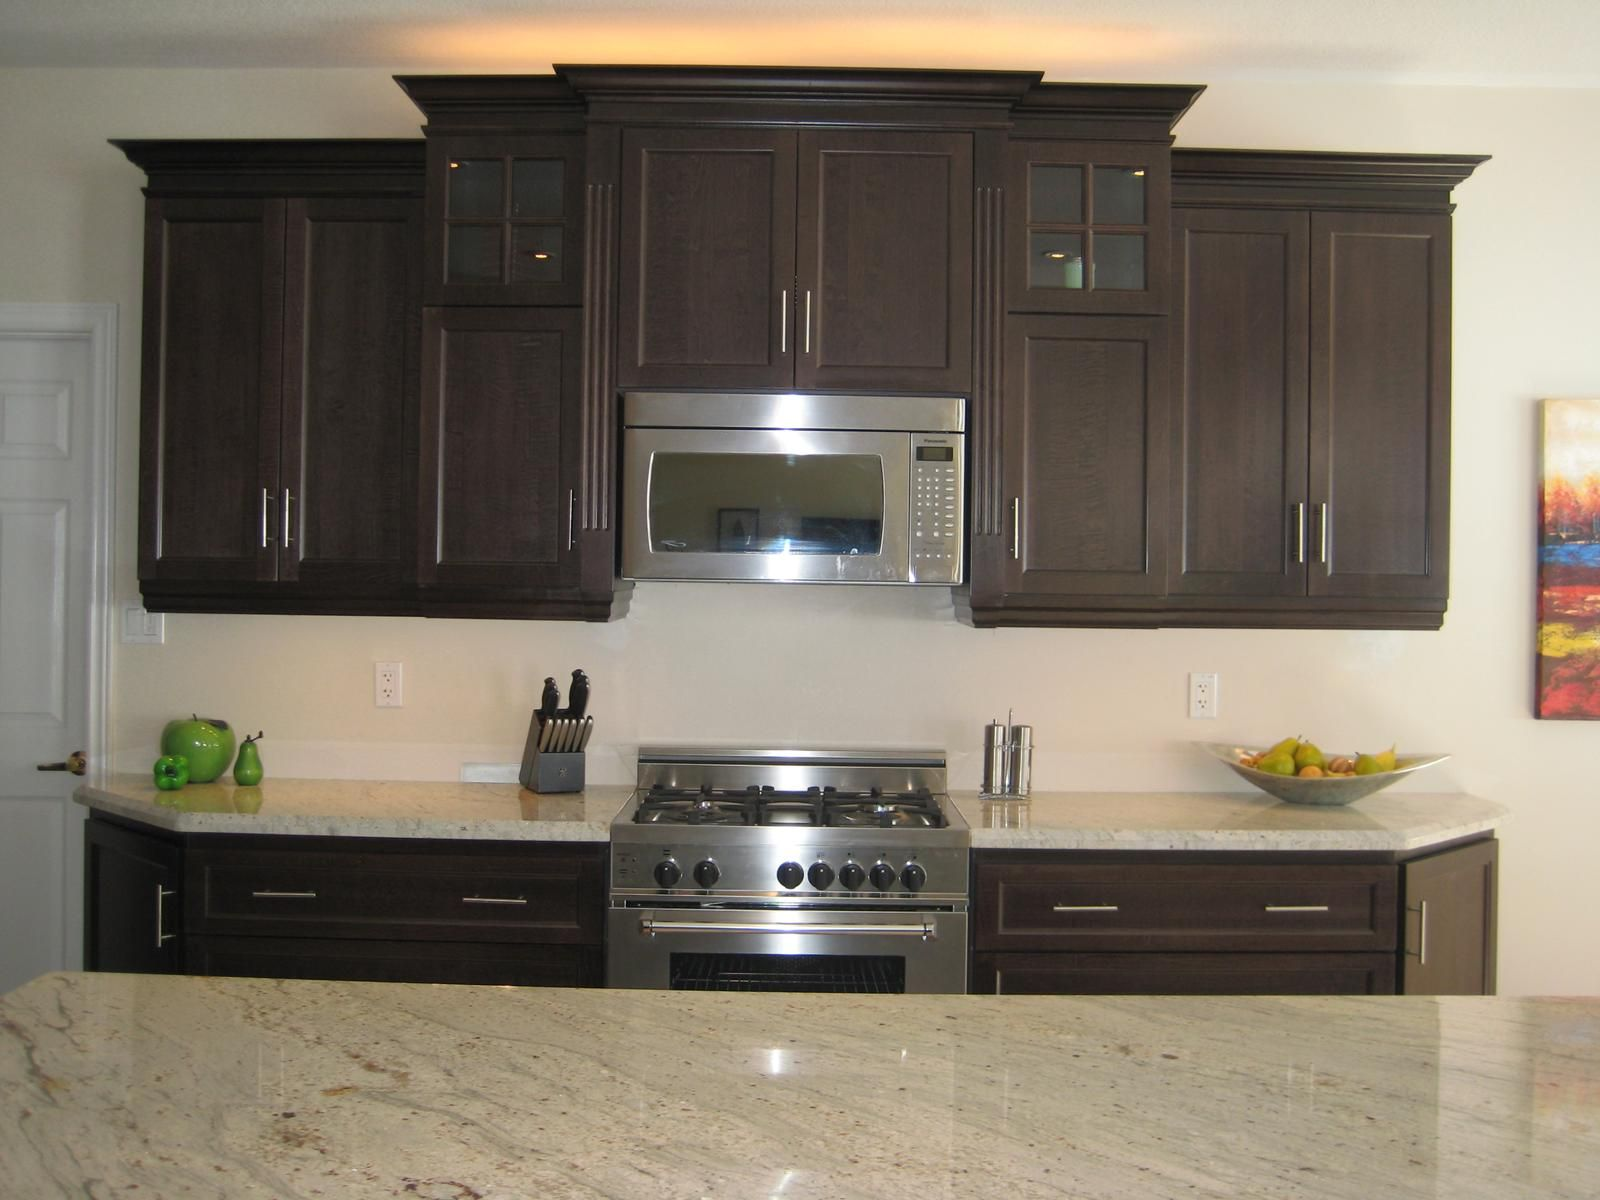 White Kitchens With White Granite Countertops Granite Direct Testimonials River White Granite Countertop